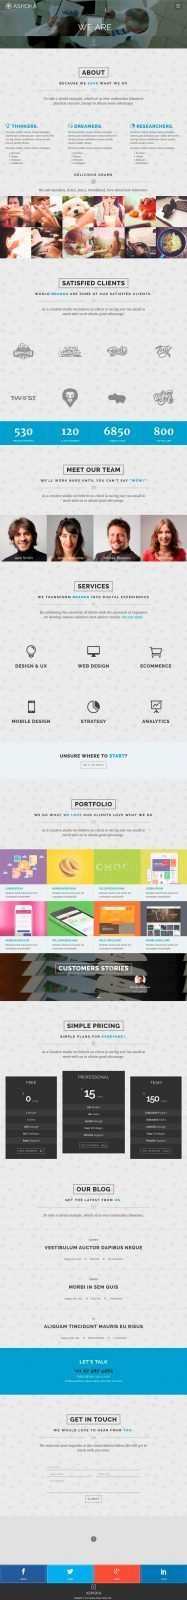 webmister-landing-page-54-03